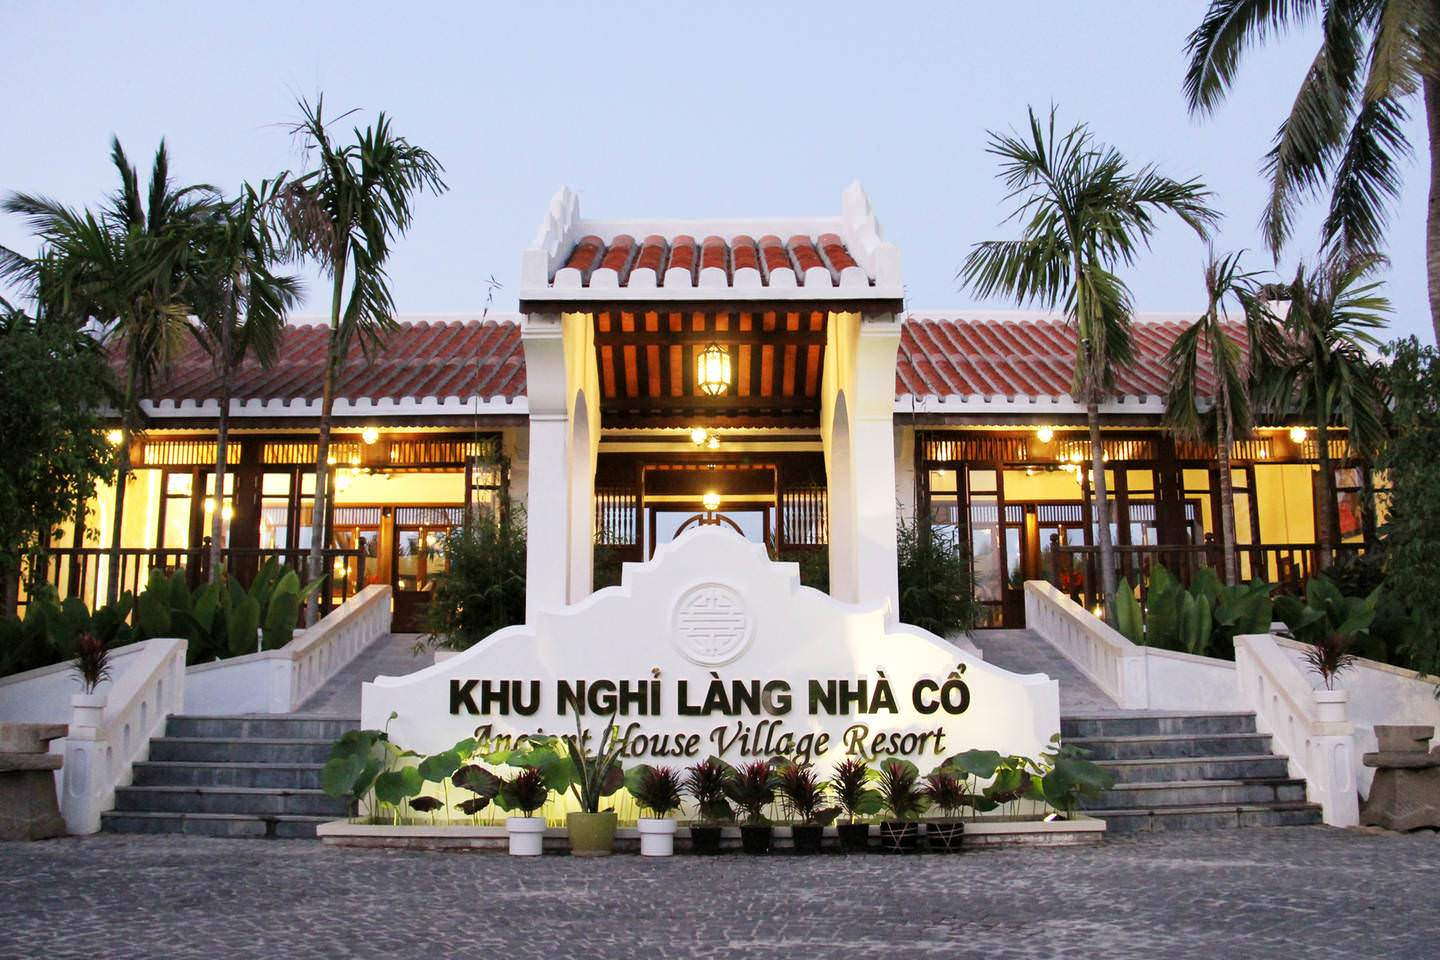 Hoi An Ancient House Village Resort